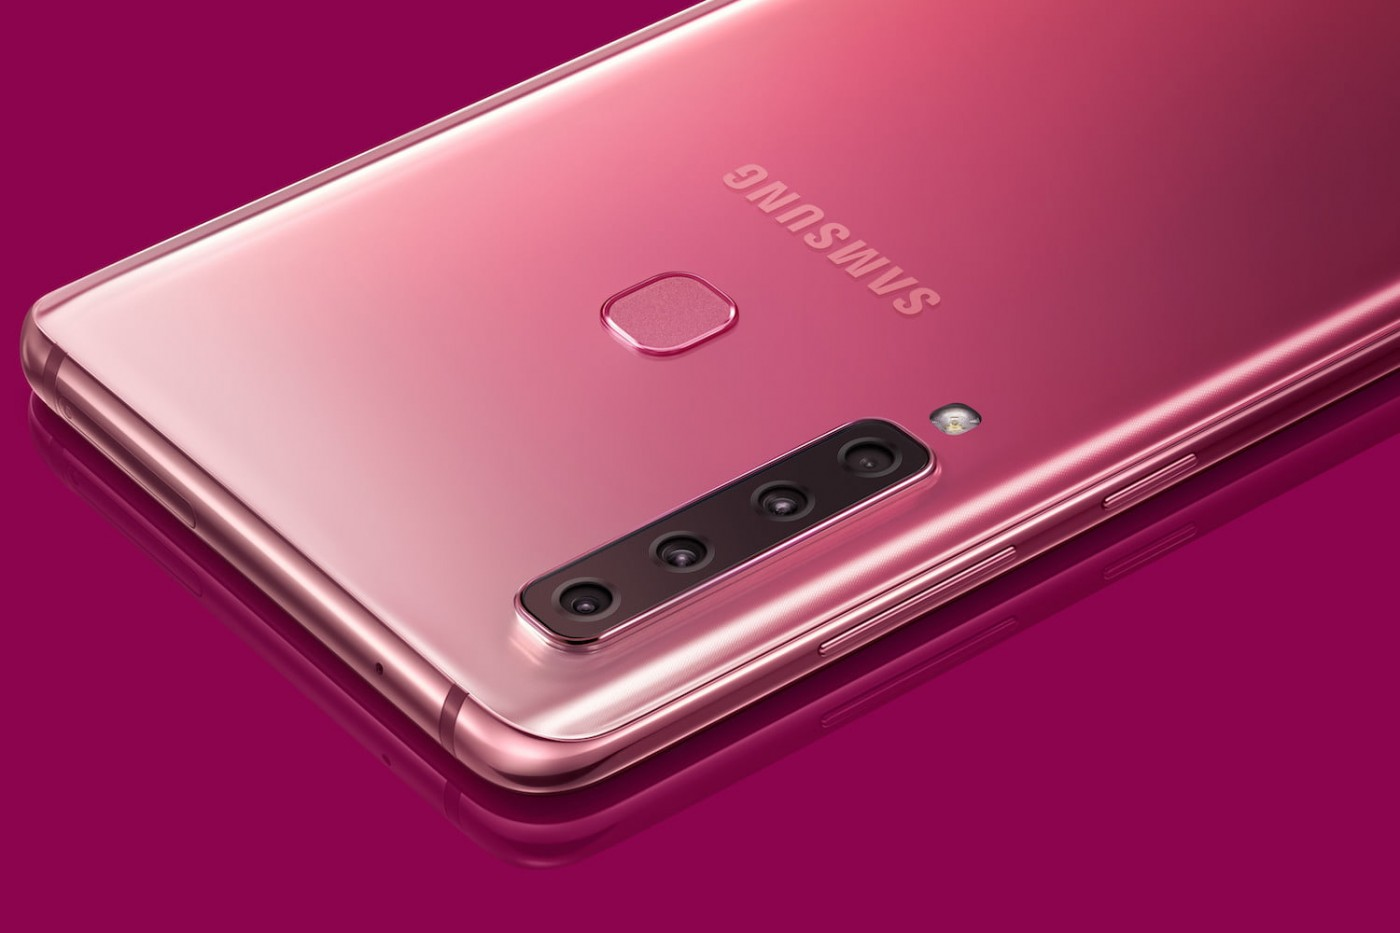 Image result for galaxy a9 pink